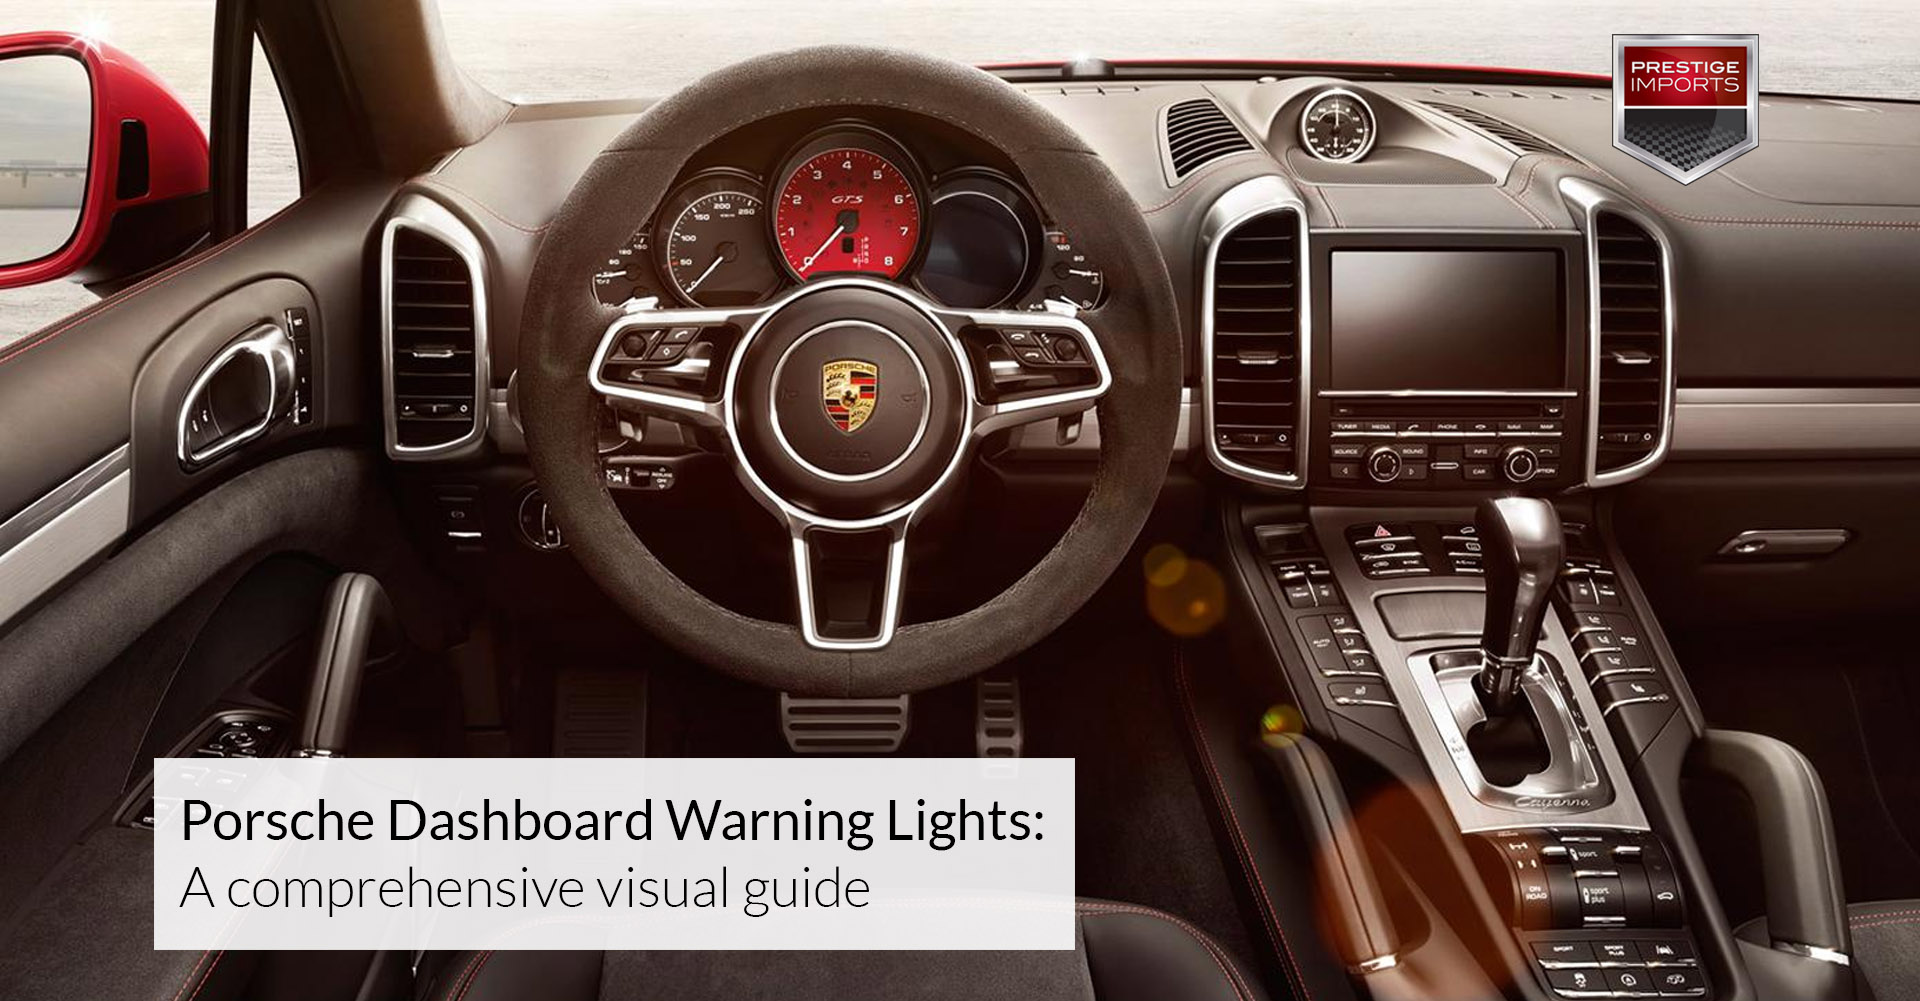 Porsche Dashboard Warning Lights A Comprehensive Visual Guide Ford 4 6 Engine Oil System Diagram